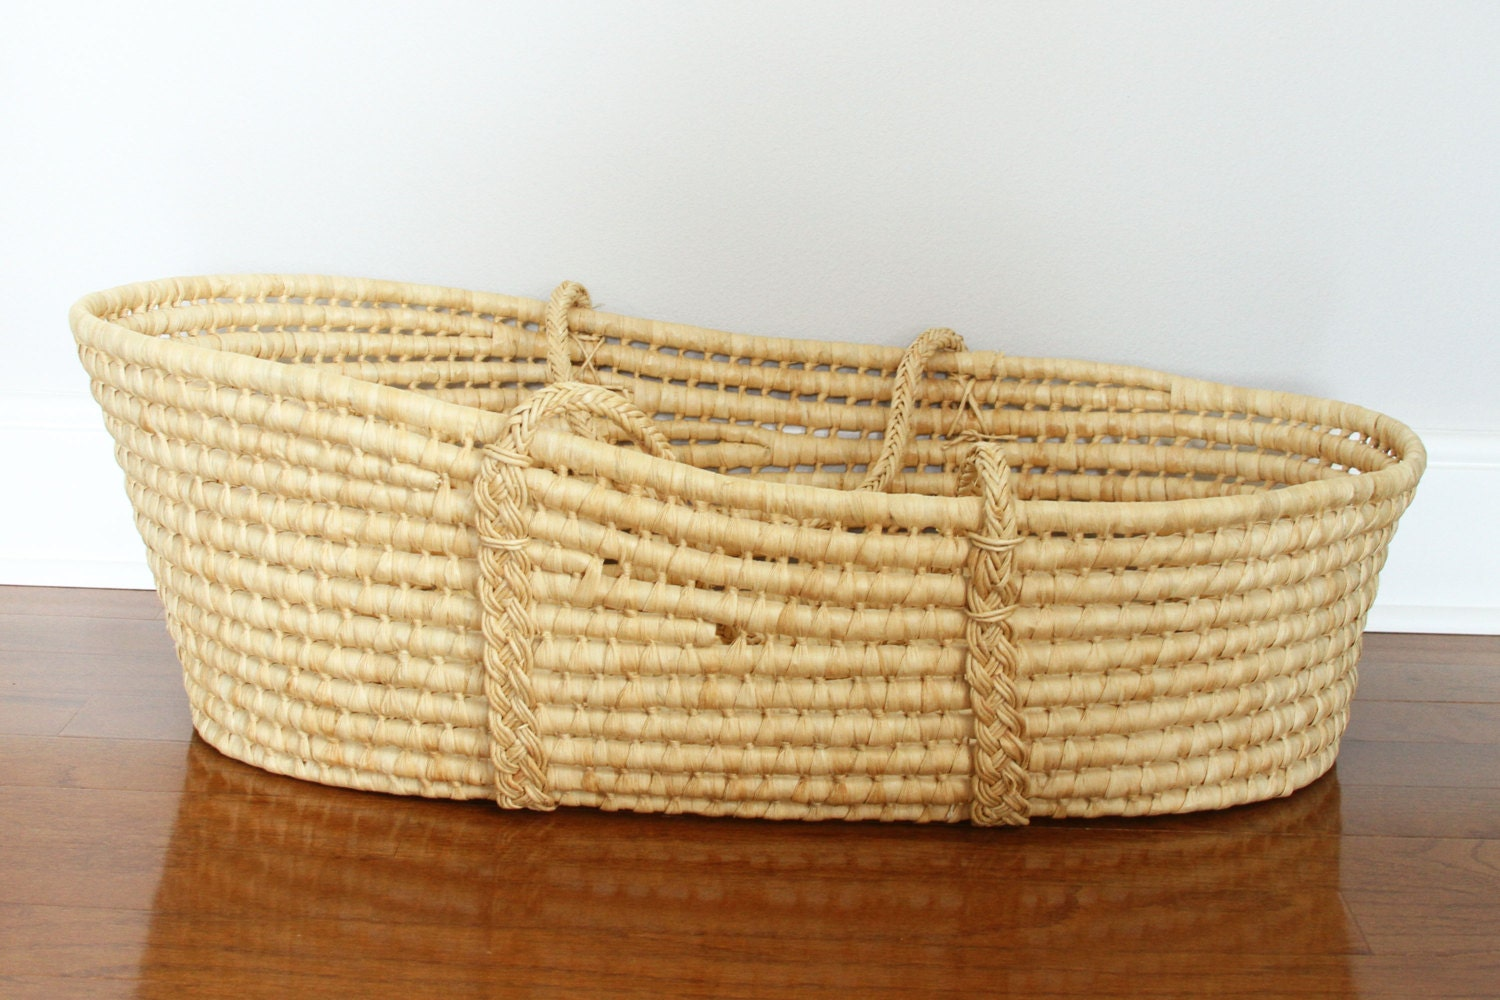 wicker moses basket woven wicker bassinet with handles. Black Bedroom Furniture Sets. Home Design Ideas